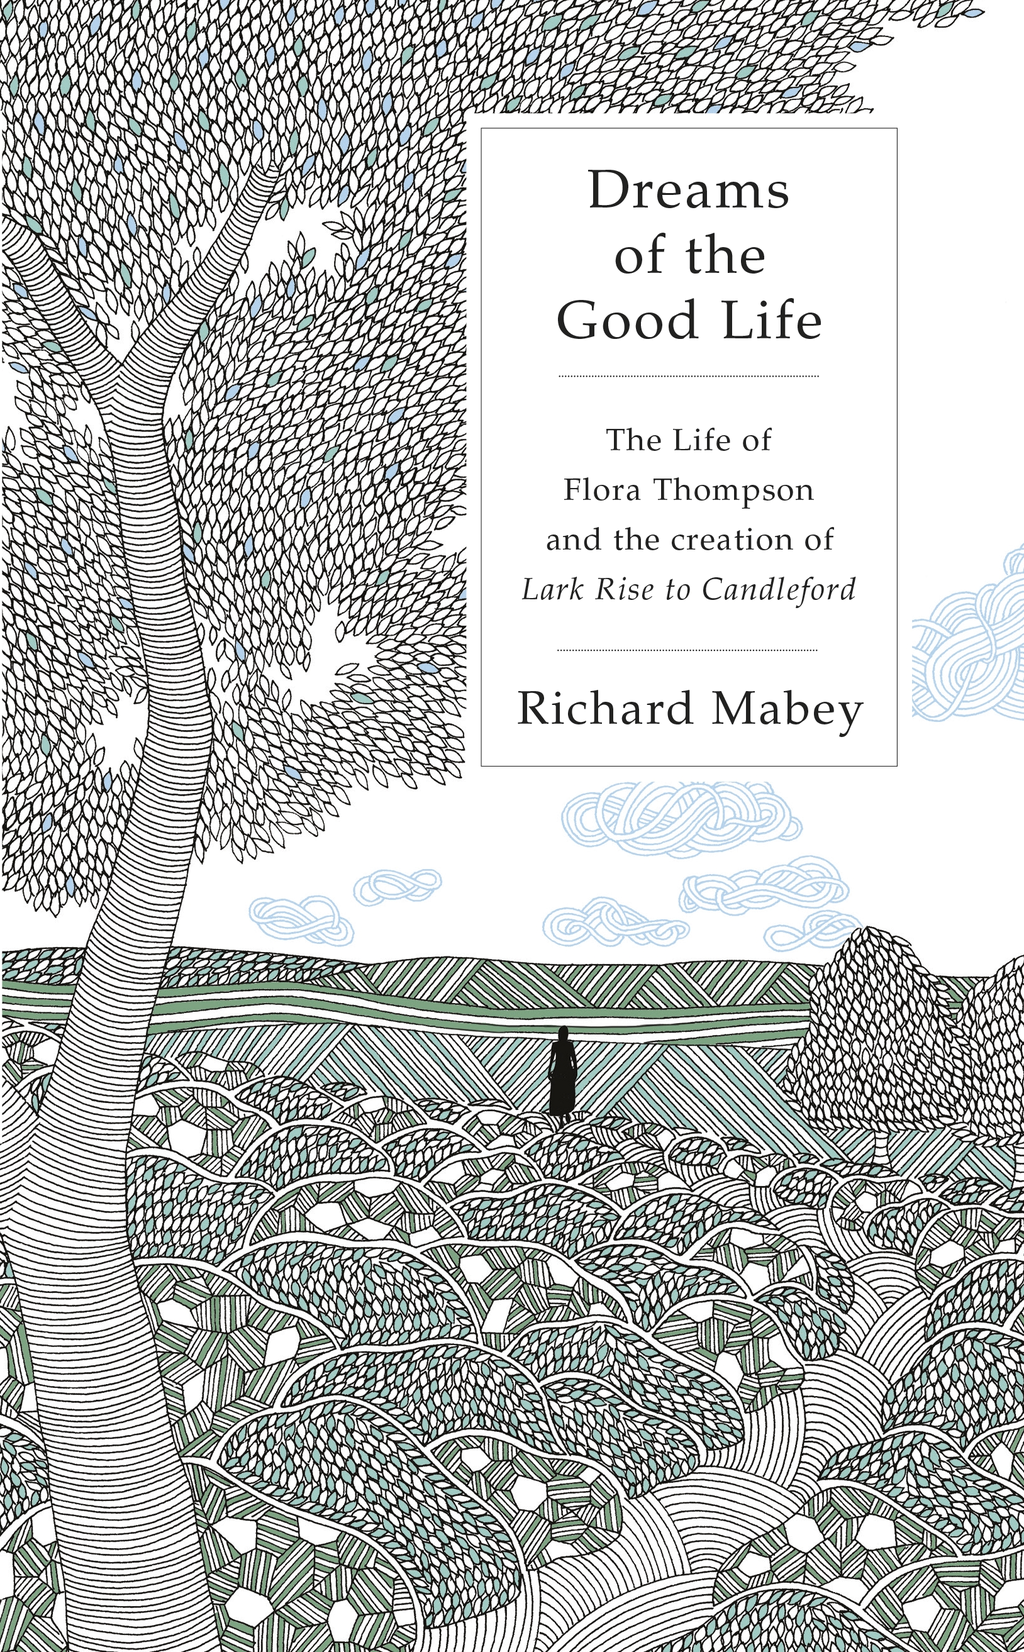 Dreams of the Good Life The life of Flora Thompson and the creation of Lark Rise to Candleford